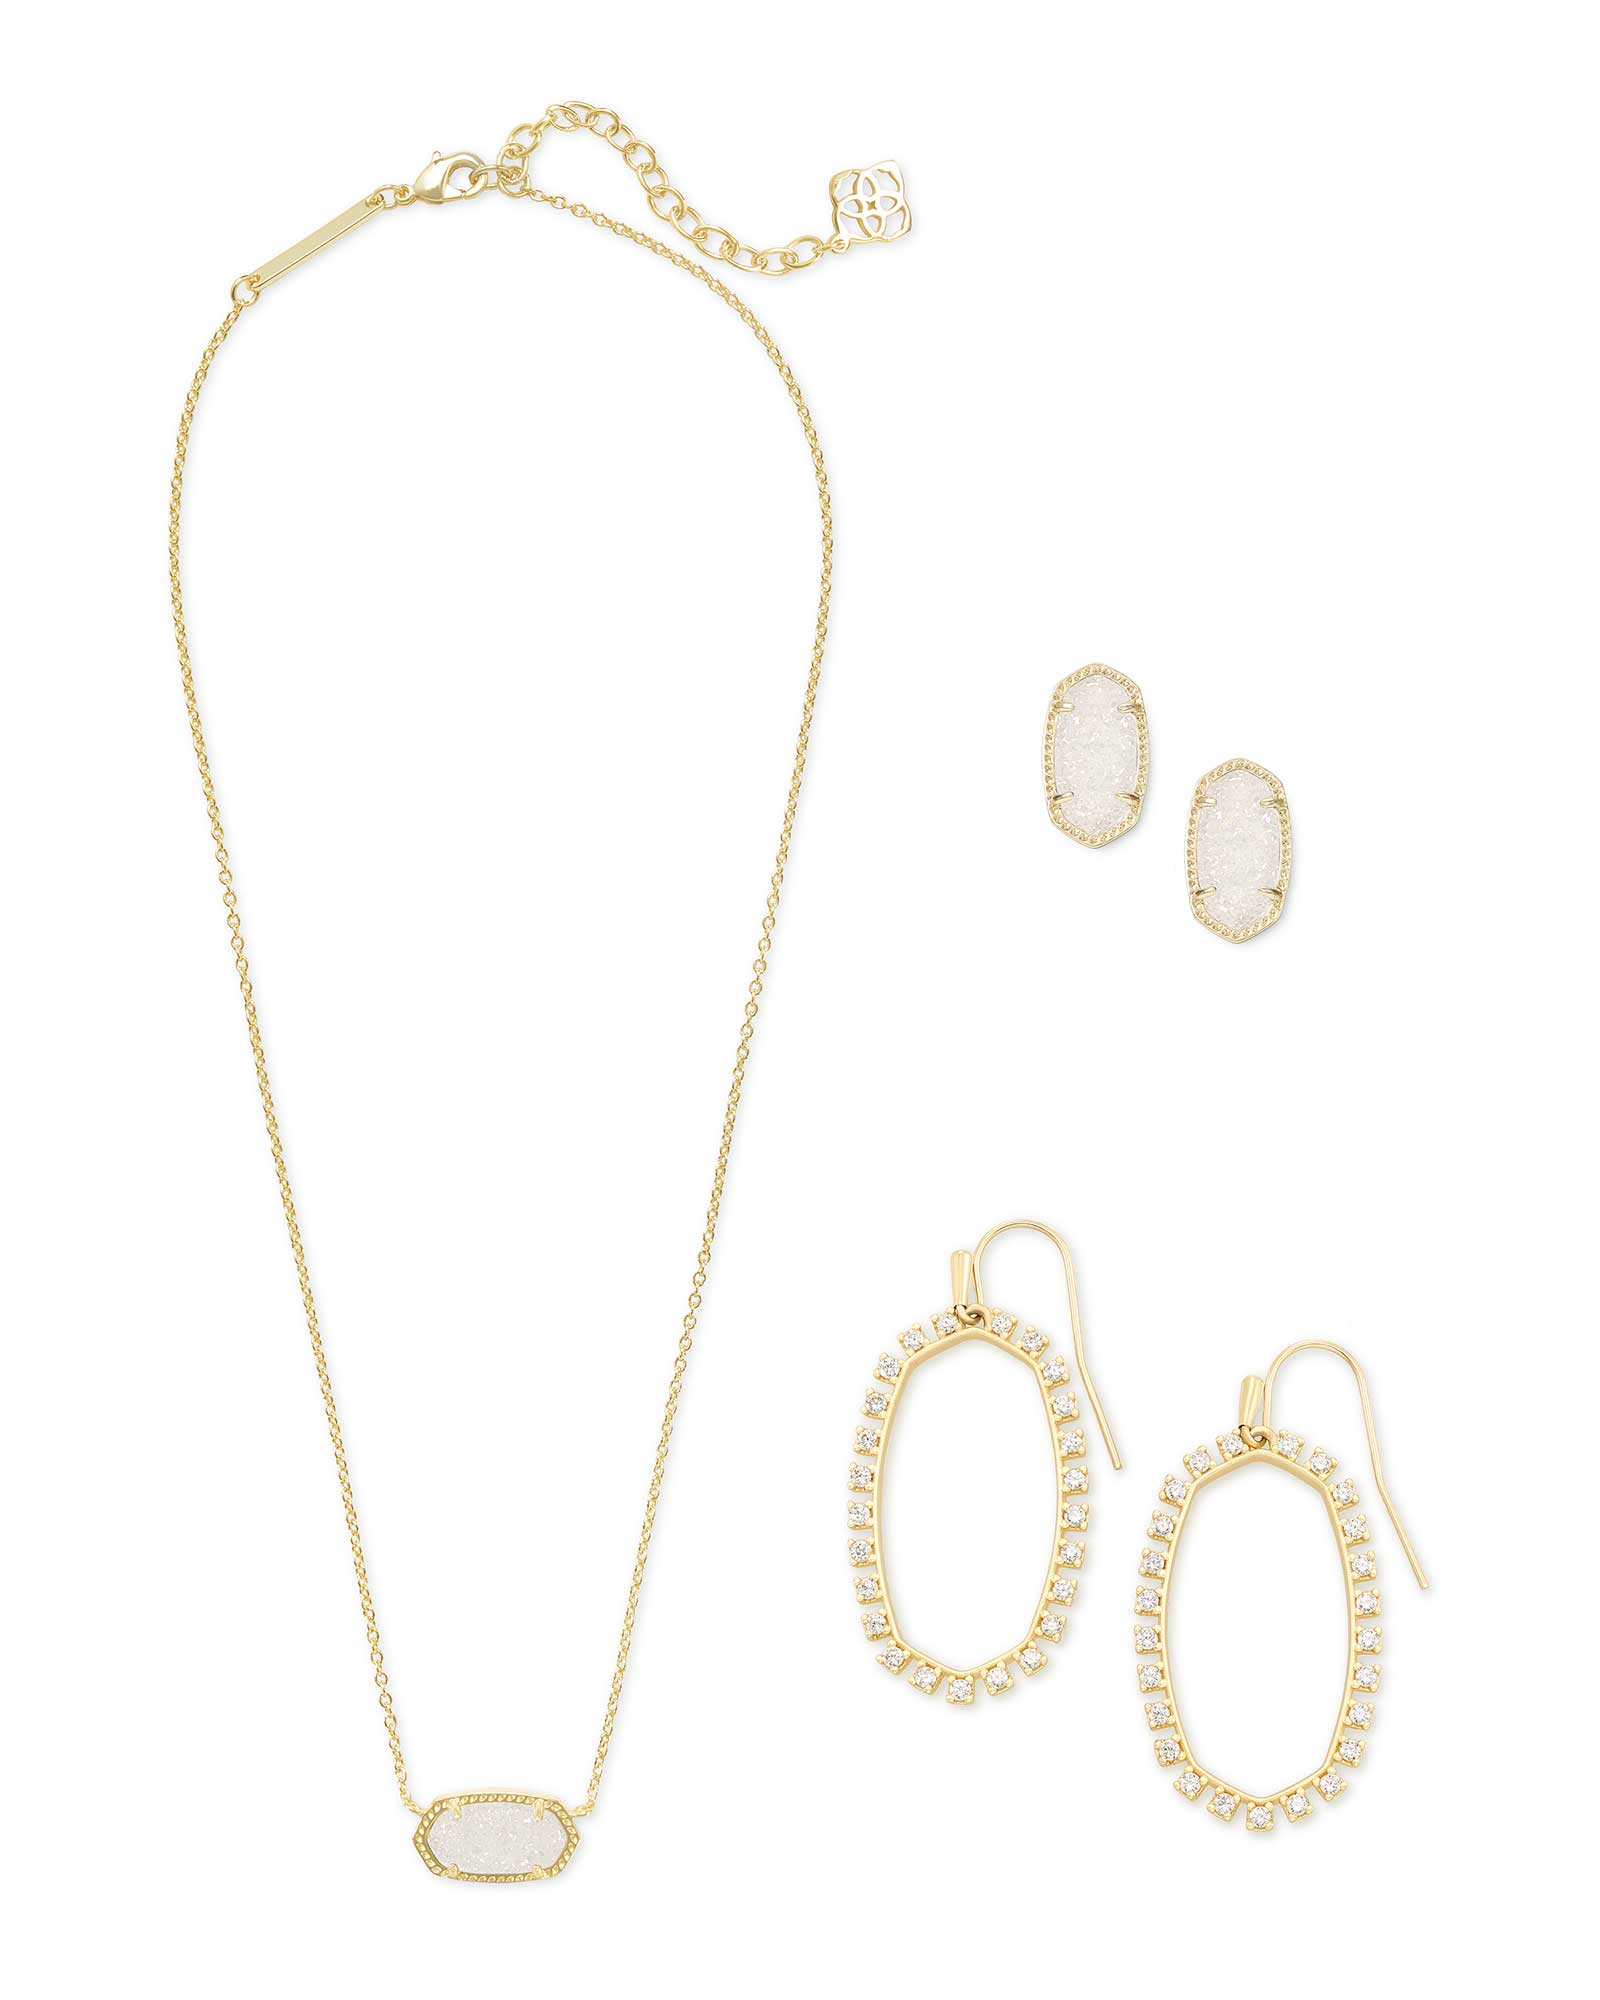 Elisa Necklace, Ellie Earrings, & Elle Open Frame Crystal Earrings Gift Set